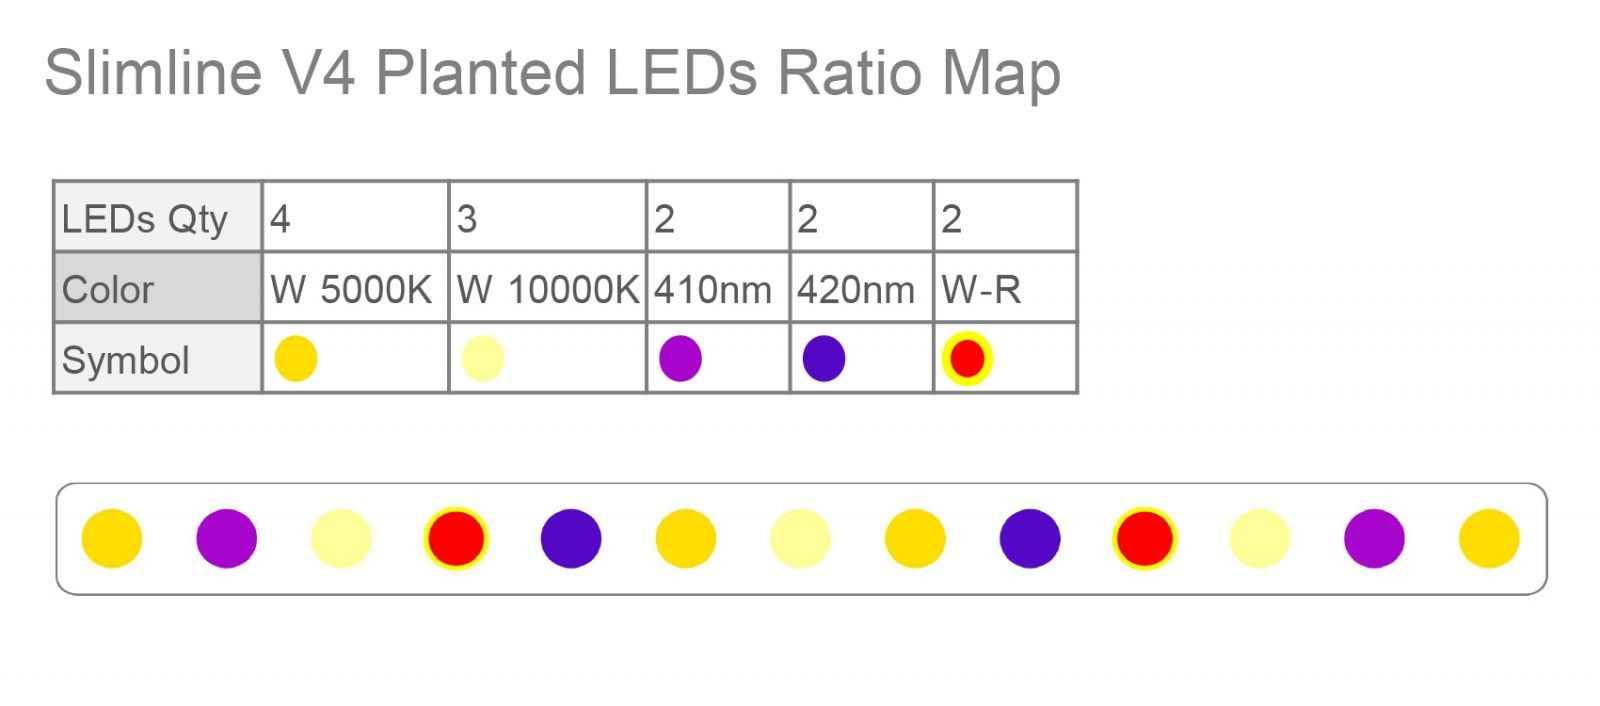 Slimline-V4-LED-planted-ratio-map